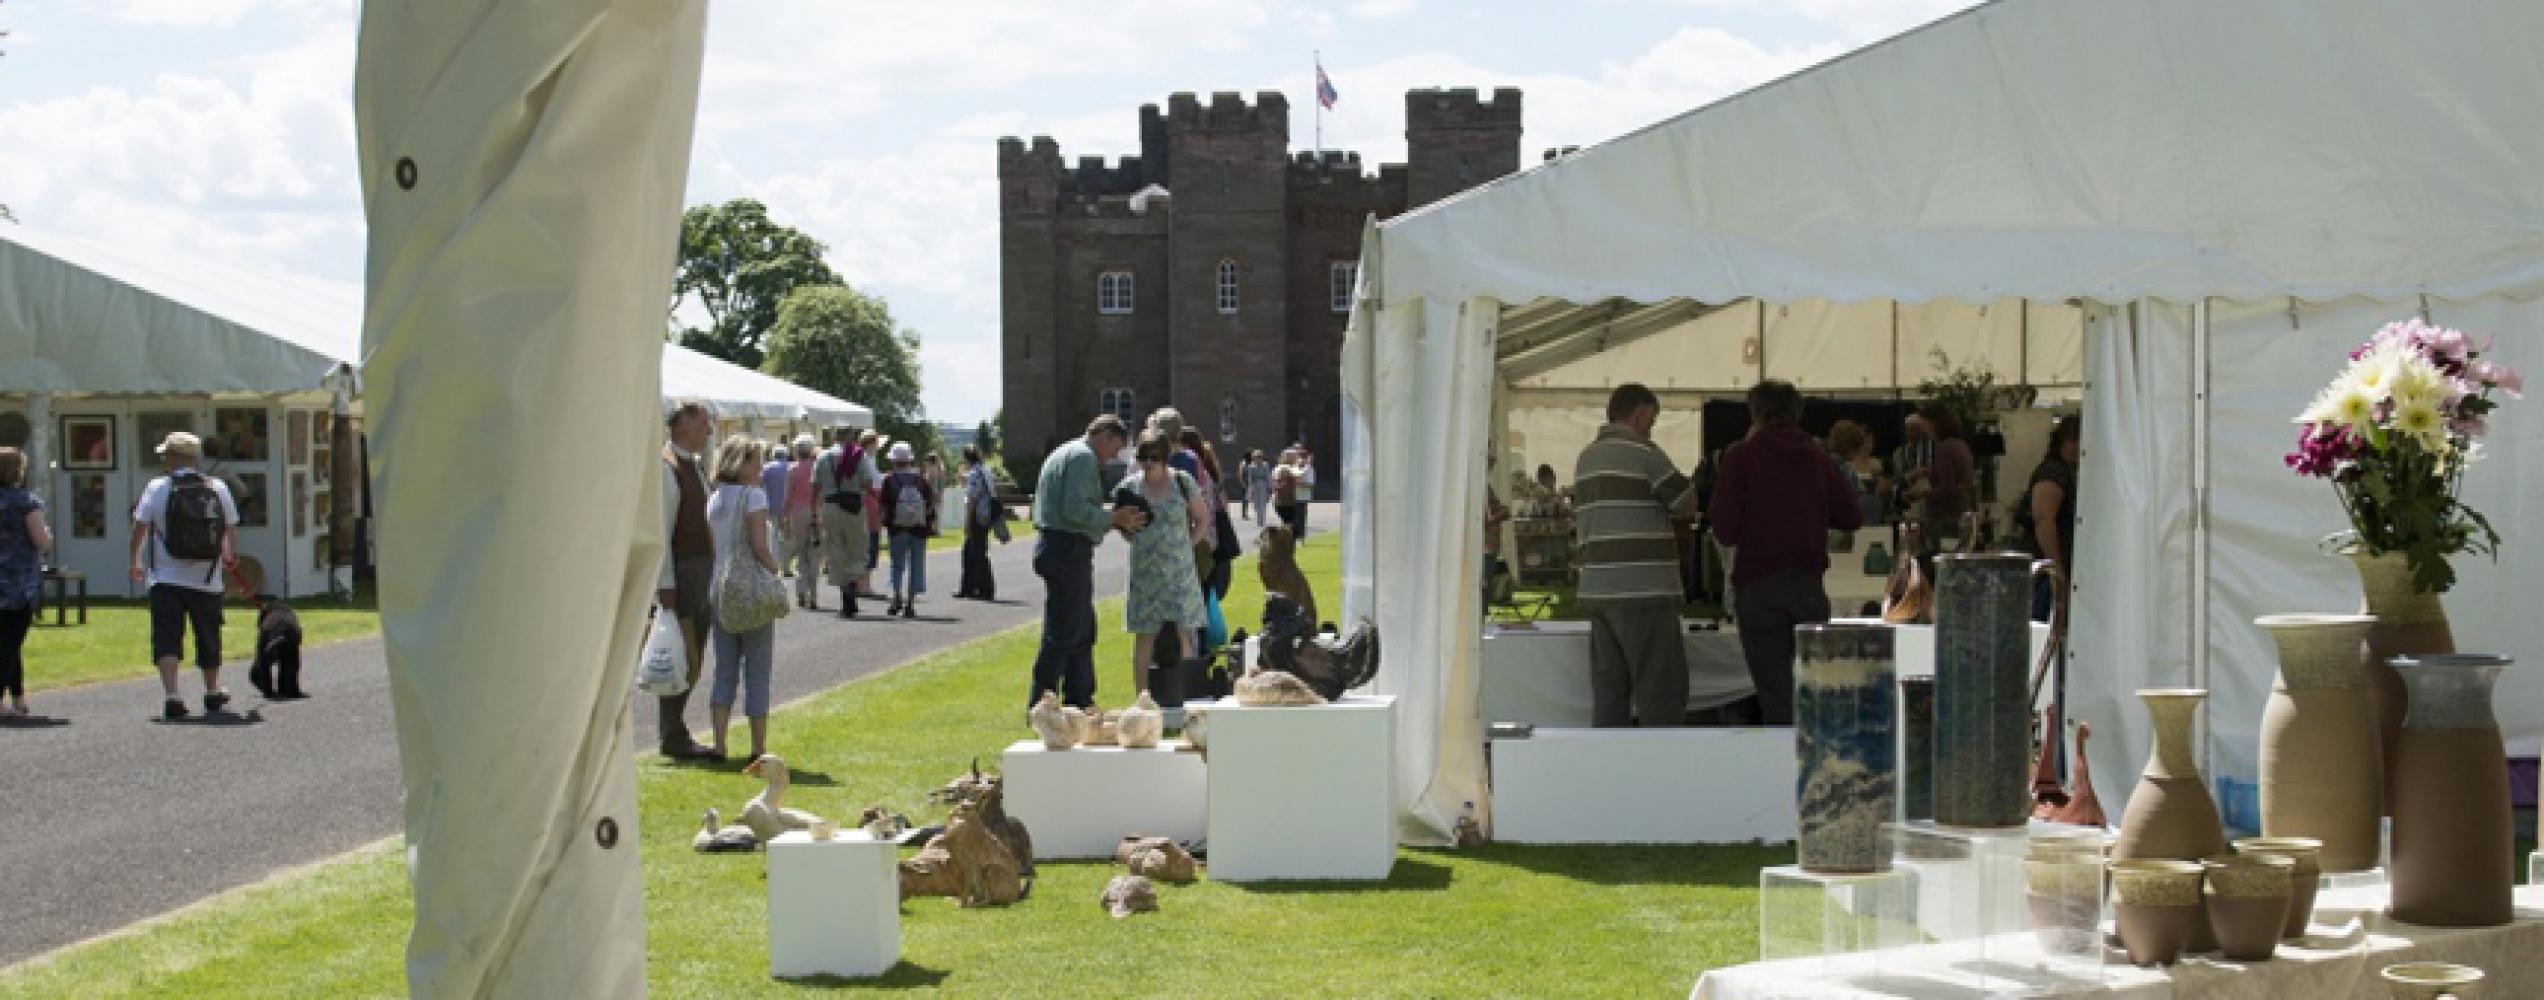 Potclays are exhibiting at Potfest Scotland 7-9 June